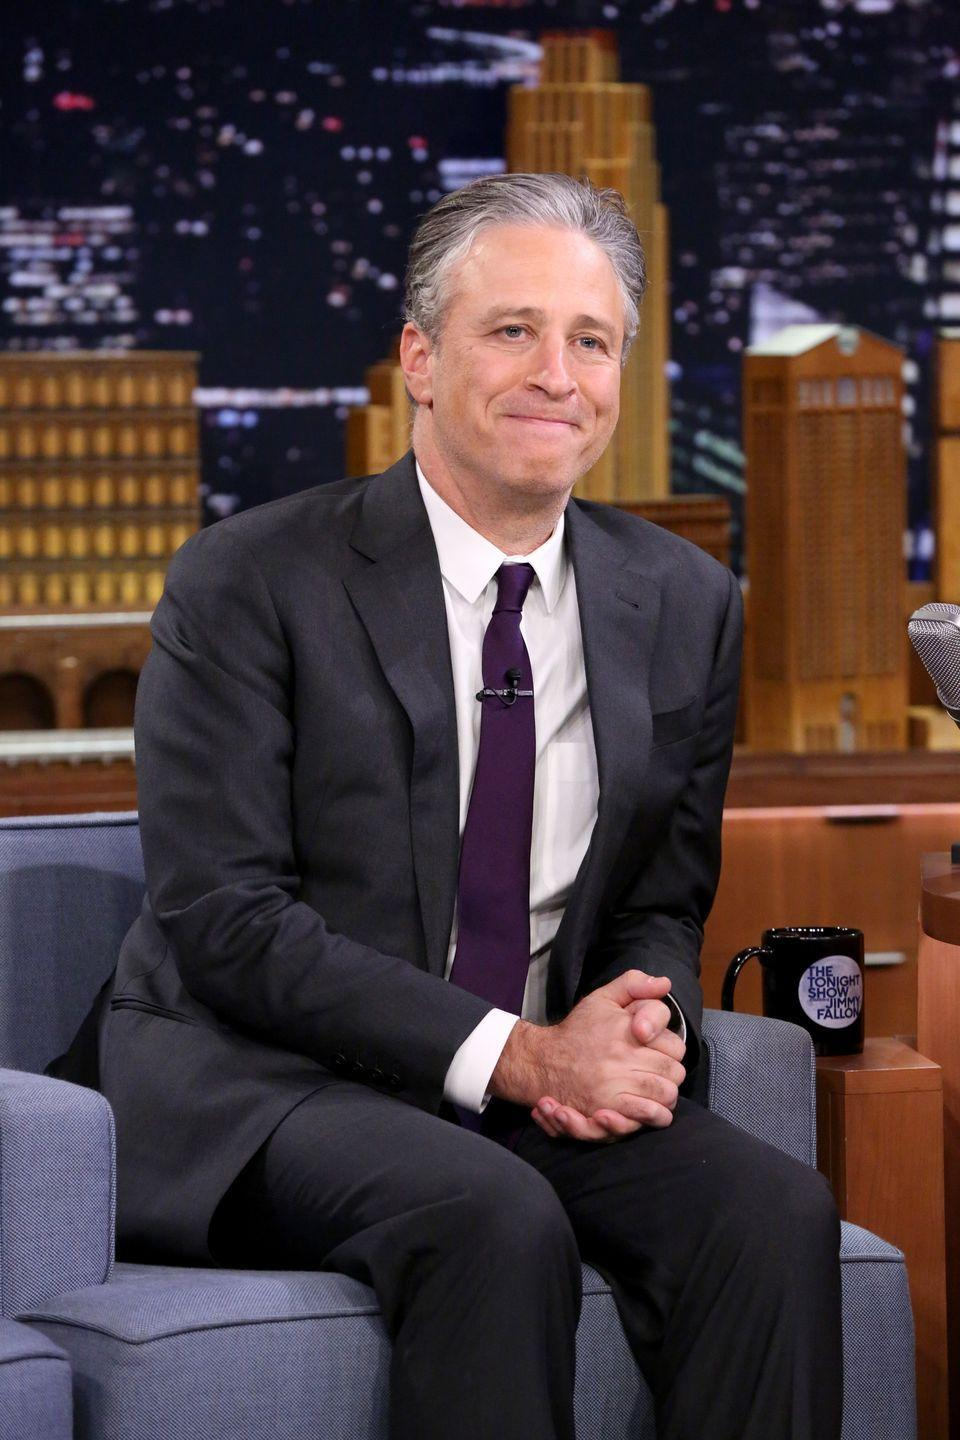 """<p>Jon Stewart may be known for his comedic wit today, but back in the day the entertainer earned accolades on the soccer field. Stewart played on the <a href=""""https://www.ncaa.com/news/soccer-men/article/2015-08-06/jon-stewart-was-college-soccer-star-long-daily-show-host#:~:text=Jon%20Stewart%20once%20led%20William%20%26%20Mary%20to%20NCAA%20tournament%20in%201983.&text=In%20his%20three%20seasons%20as,in%20the%201983%20ECAC%20championship."""" rel=""""nofollow noopener"""" target=""""_blank"""" data-ylk=""""slk:varsity soccer team"""" class=""""link rapid-noclick-resp"""">varsity soccer team </a>during his years at William & Mary in the '80s. </p>"""